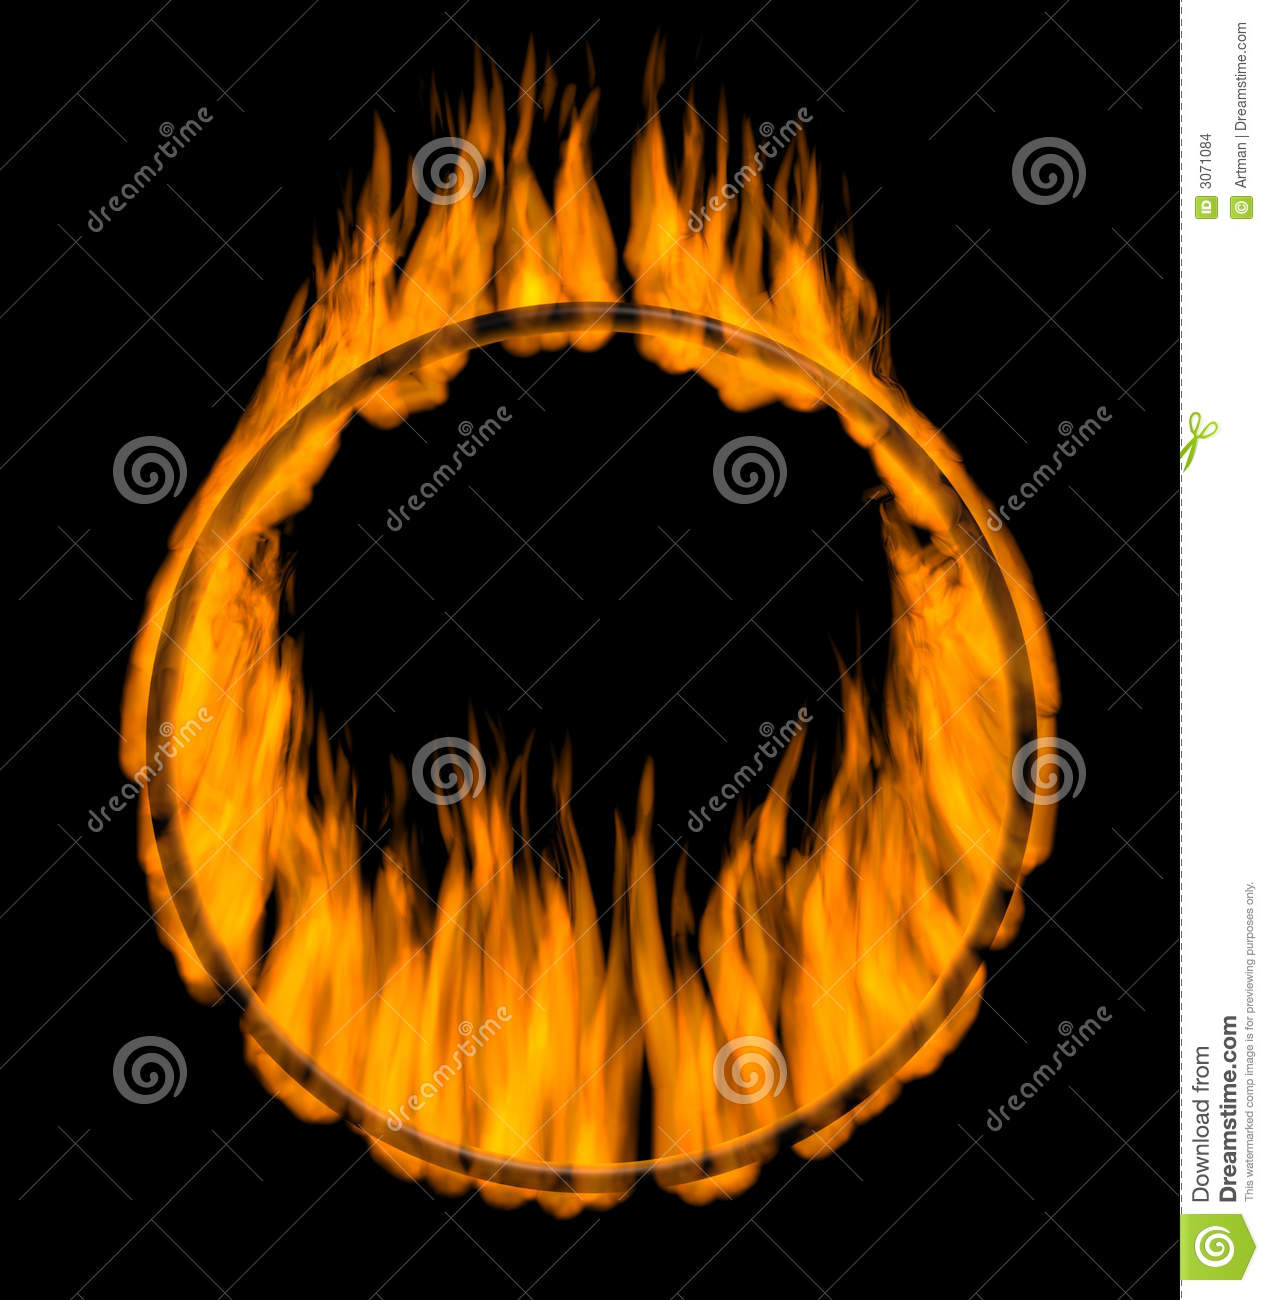 ring rings midway iron firering fire